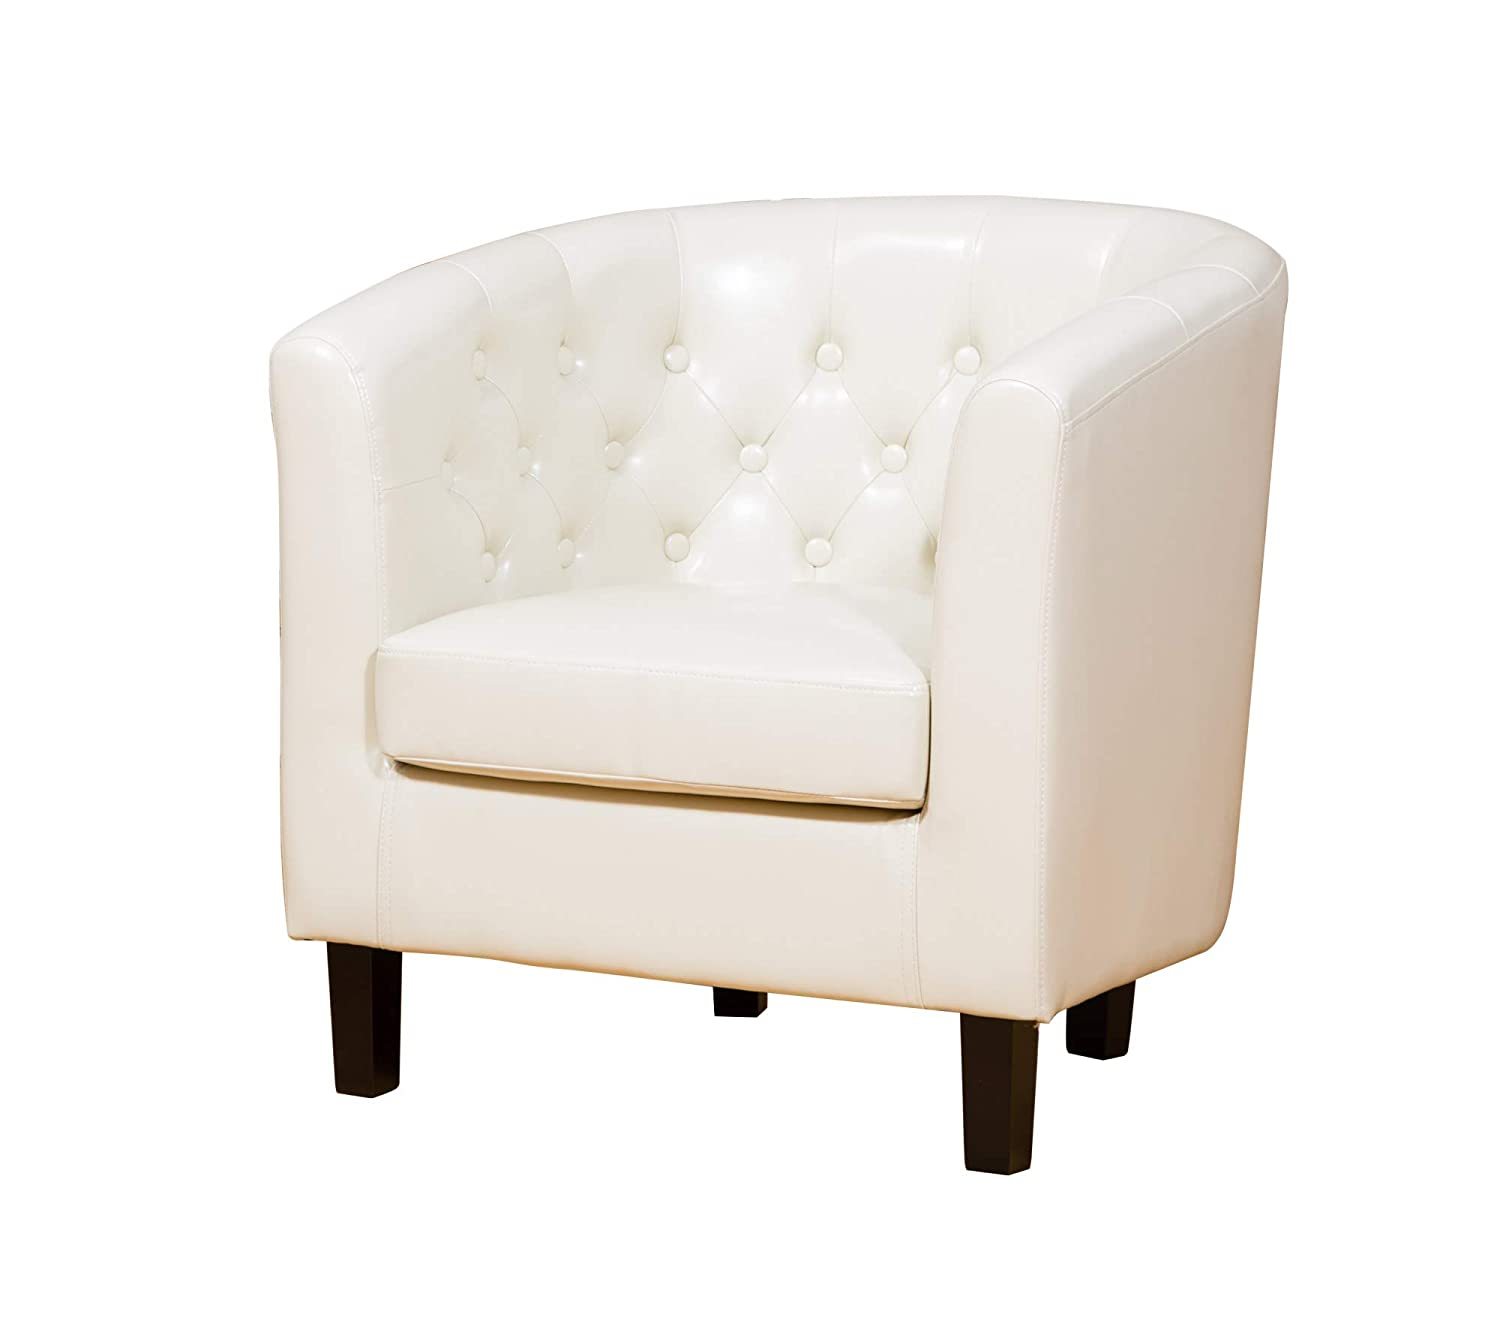 Sofa Collection Chesterfield Style Beauvais Tub Chair with Studded Back, Bonded Leather, Cream, 70 x 76 x 73 cm 5060363584888